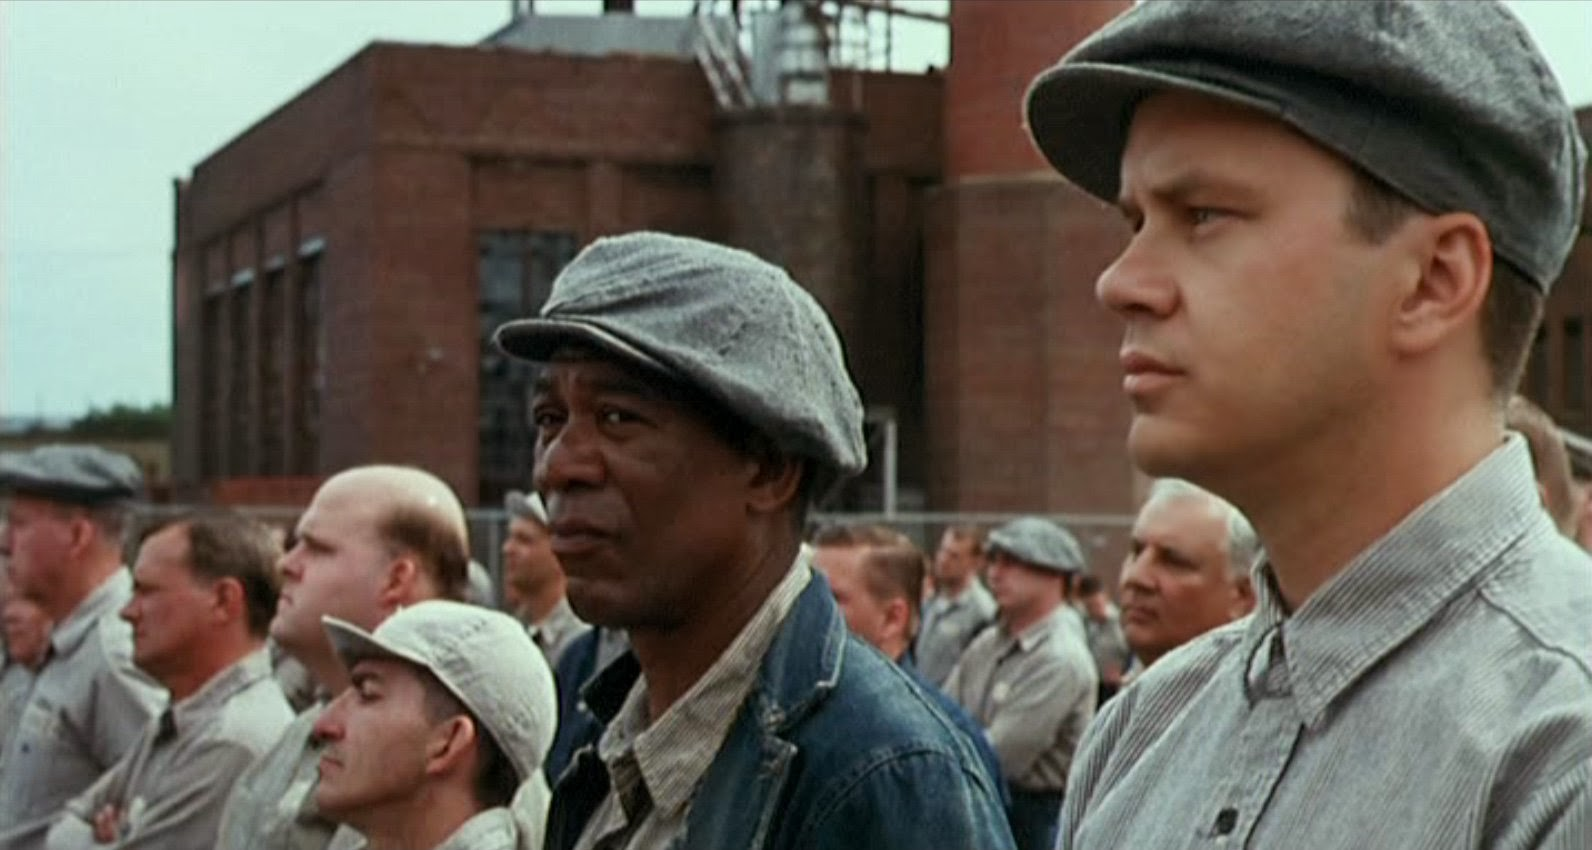 movie review the shawshank redemption the ace black blog movie review the shawshank redemption 1994